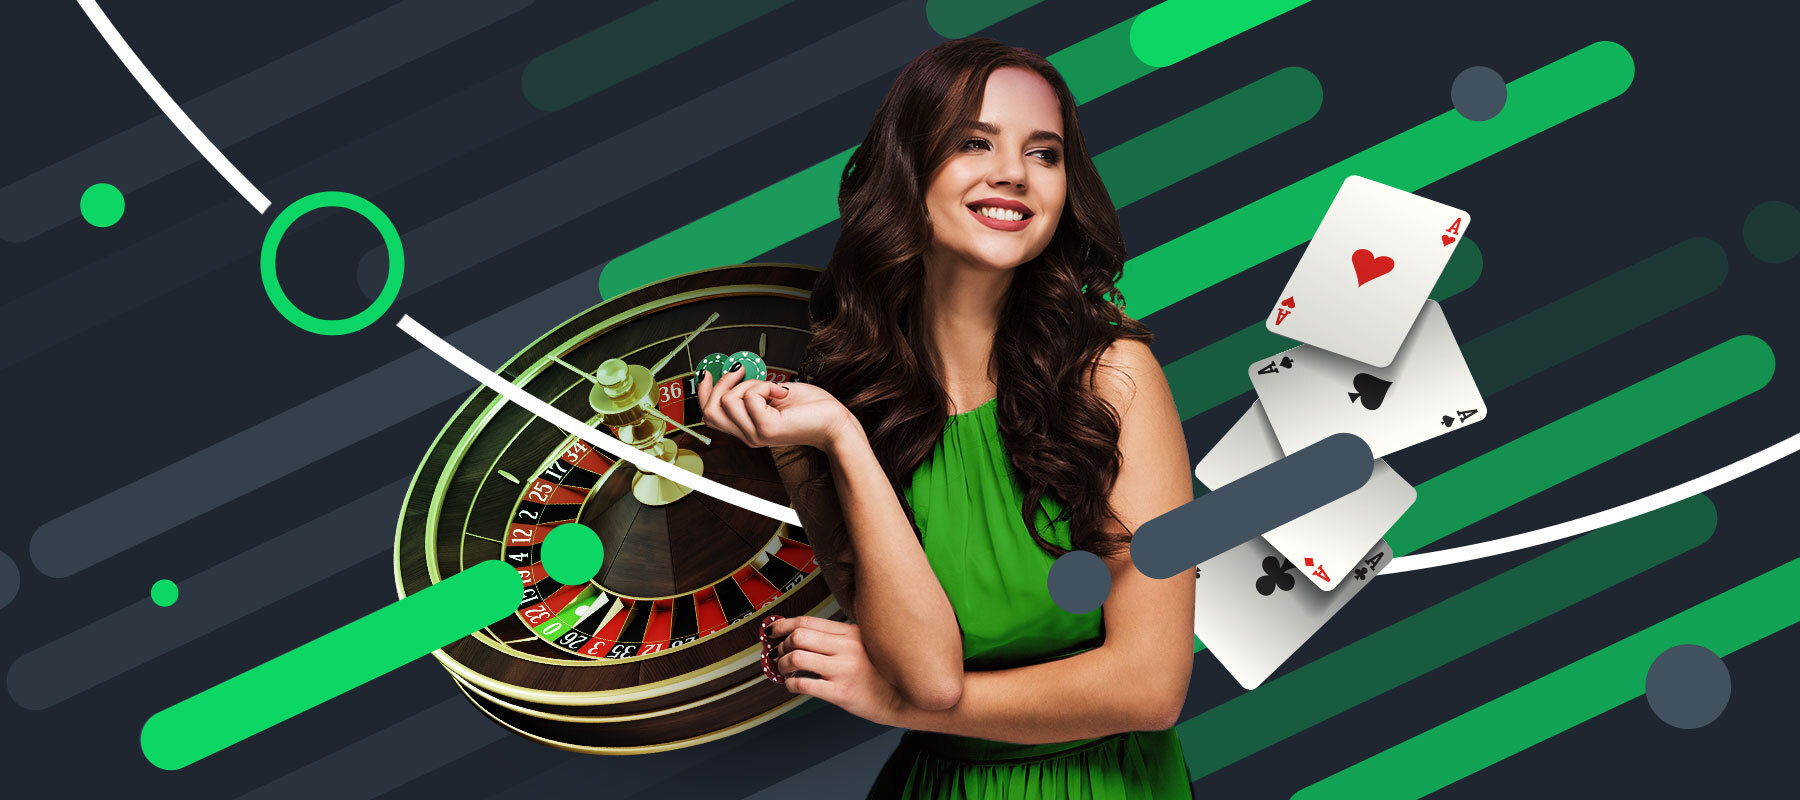 Disadvantages of playing at online casinos and gambling games online